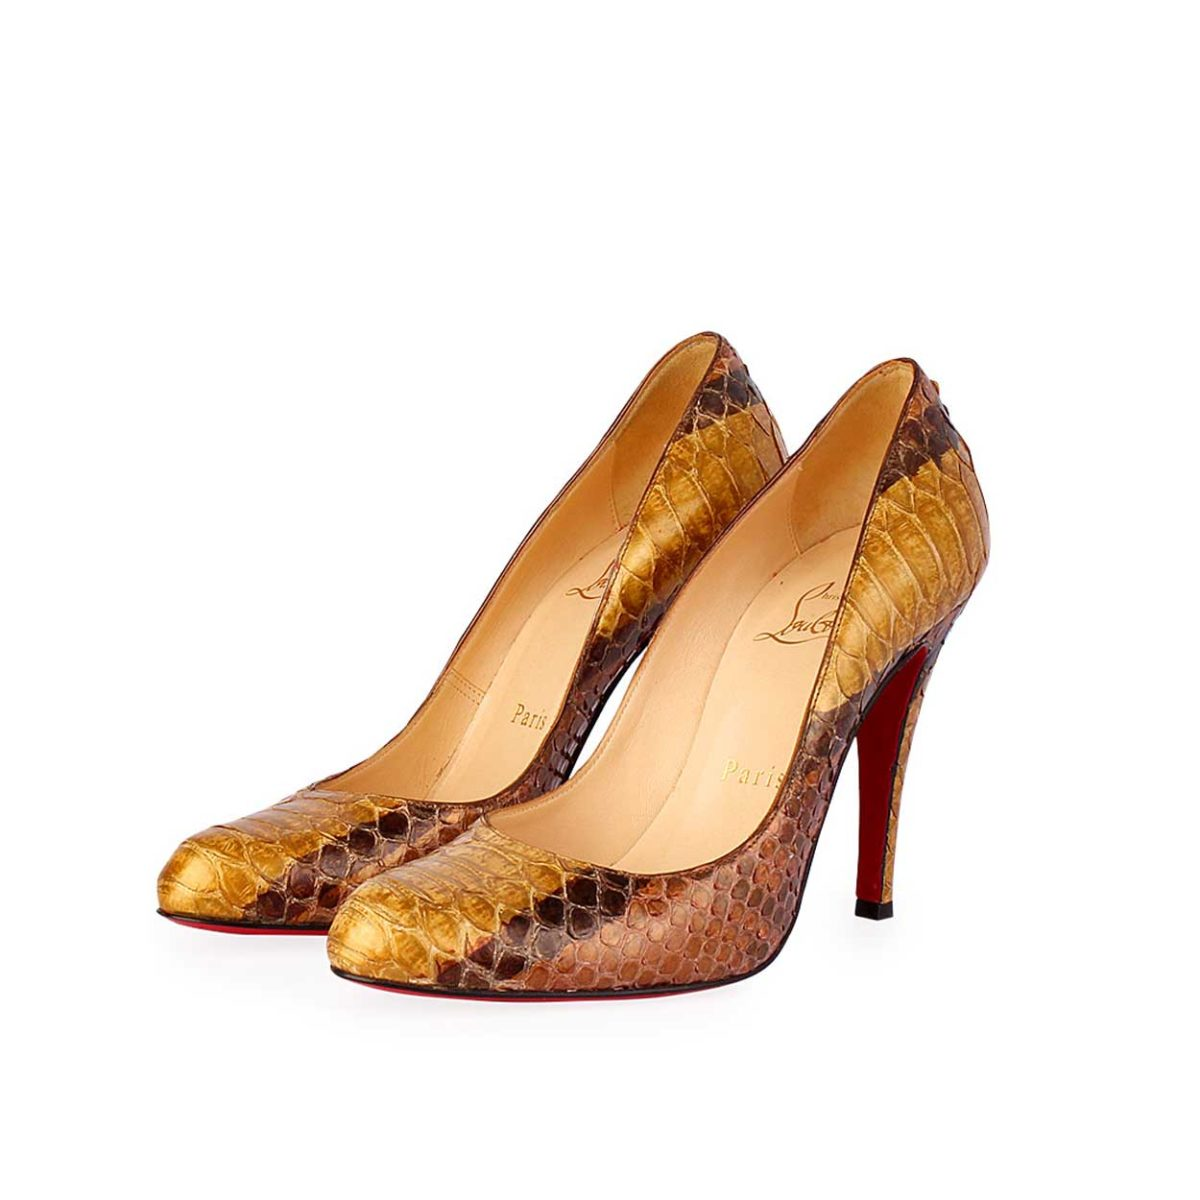 sneakers for cheap e3fd3 a8516 CHRISTIAN LOUBOUTIN So Kate Watersnake Pumps Brown/Gold – S: 35.5 (3)